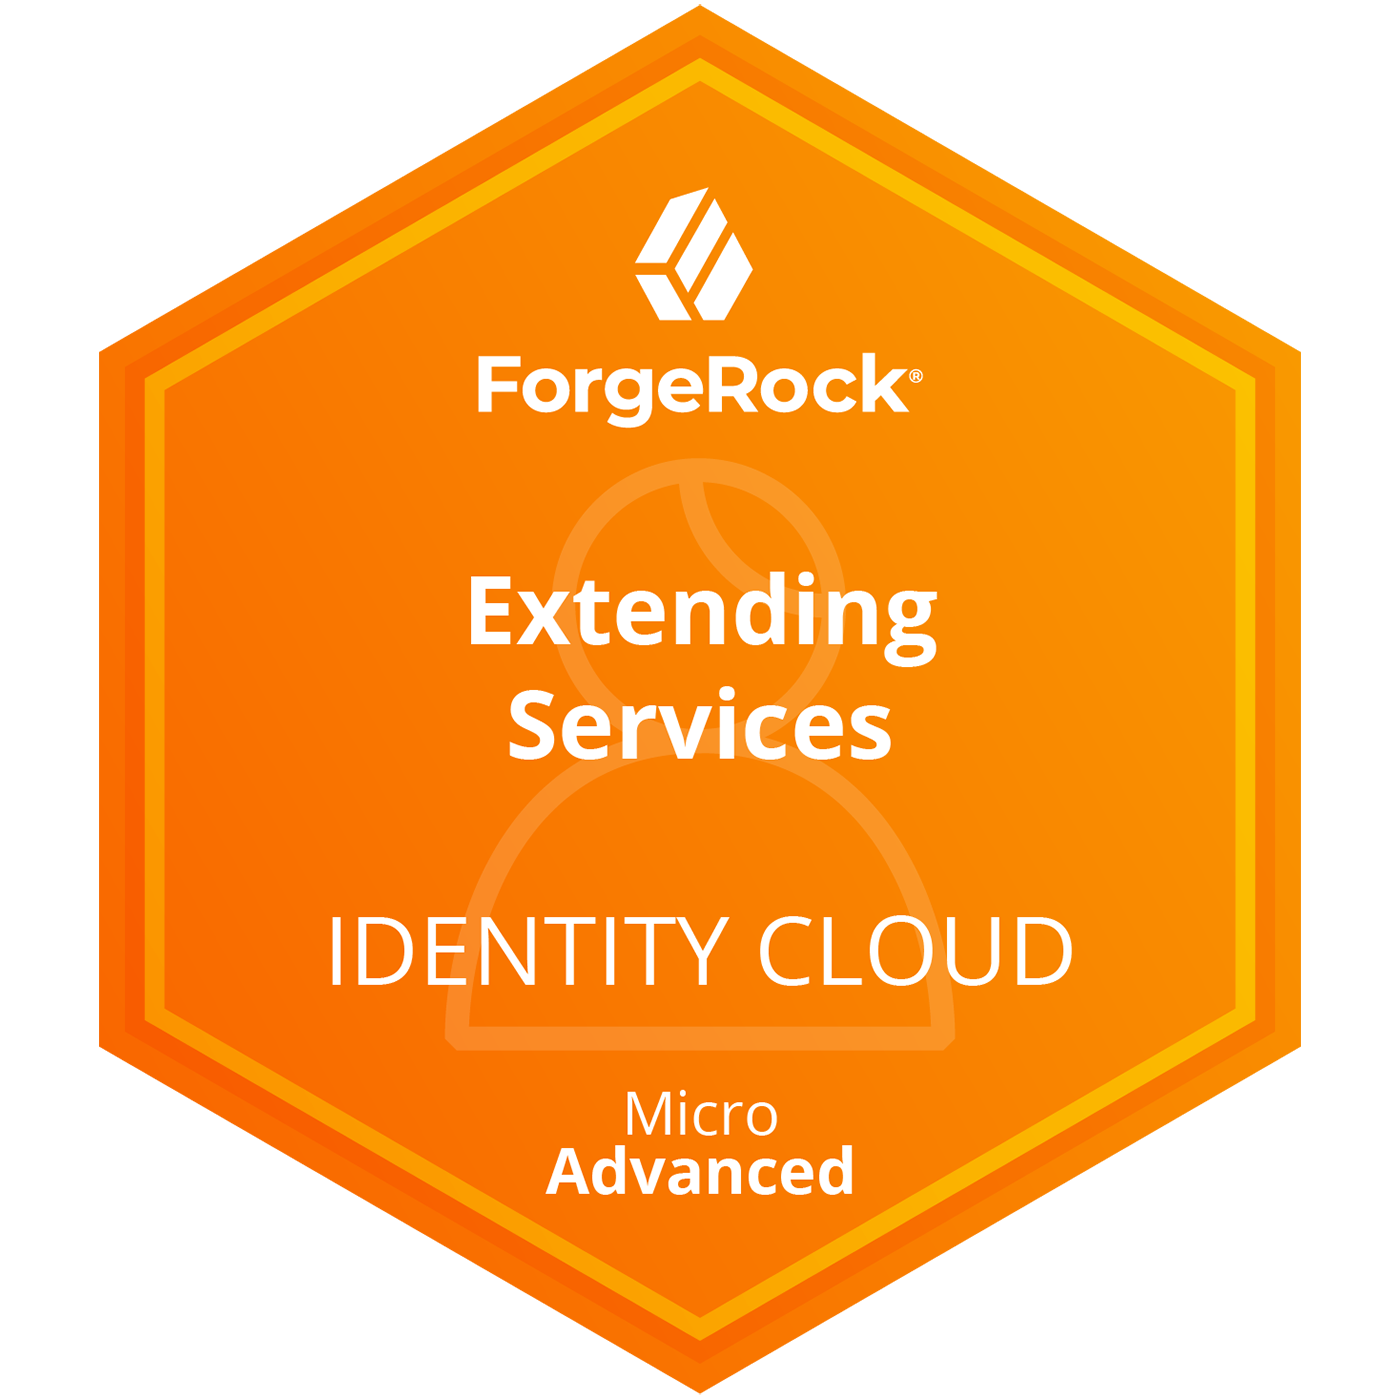 ForgeRock Identity Cloud: Access Management Micro Advanced Skills - Extending Services using OAuth2-Based Protocols